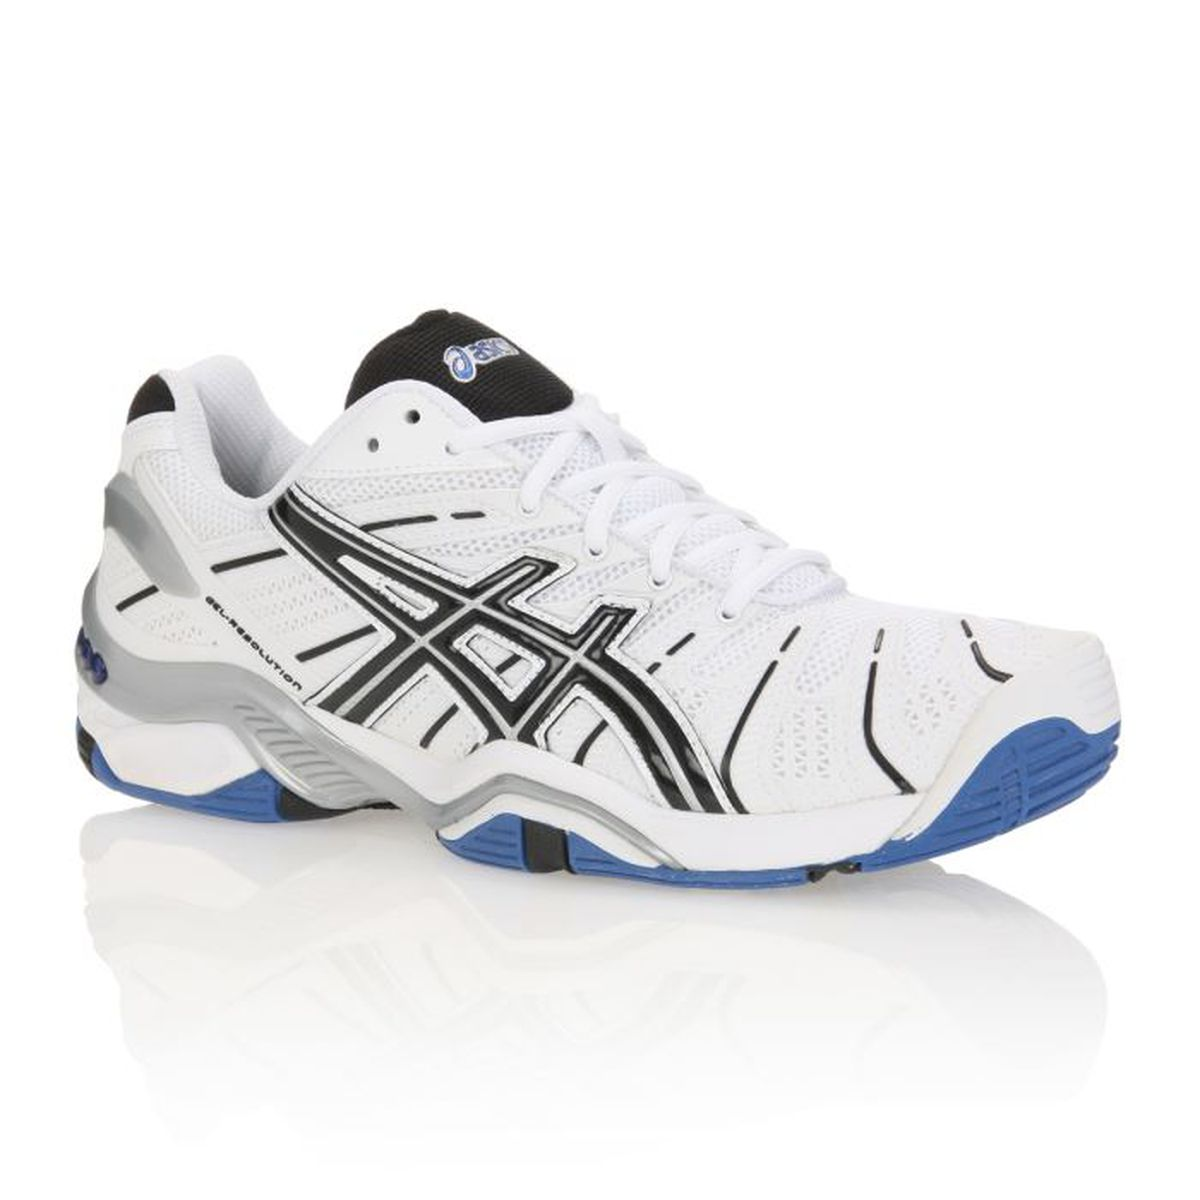 asics chaussures de tennis gel resolution 4 homme prix pas cher cdiscount. Black Bedroom Furniture Sets. Home Design Ideas